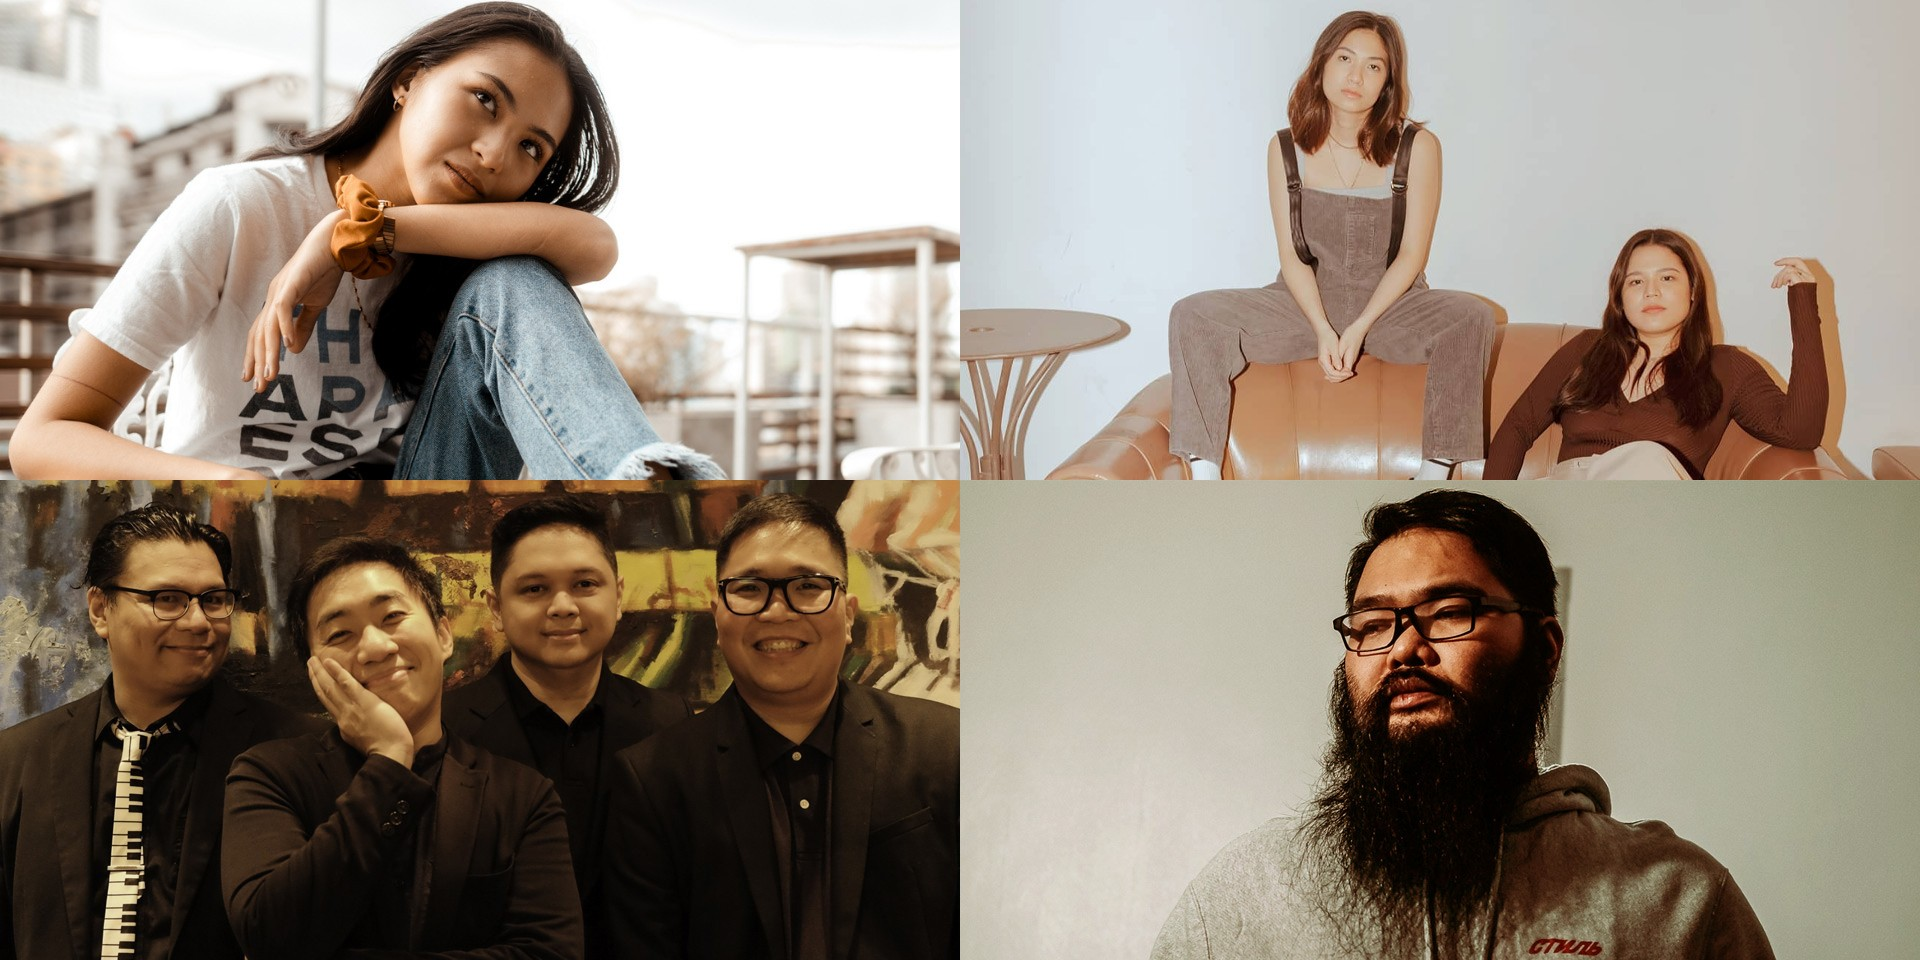 Clara Benin, The Itchyworms, Leanne & Naara, She's Only Sixteen, I Belong to the Zoo, and more release new music – listen